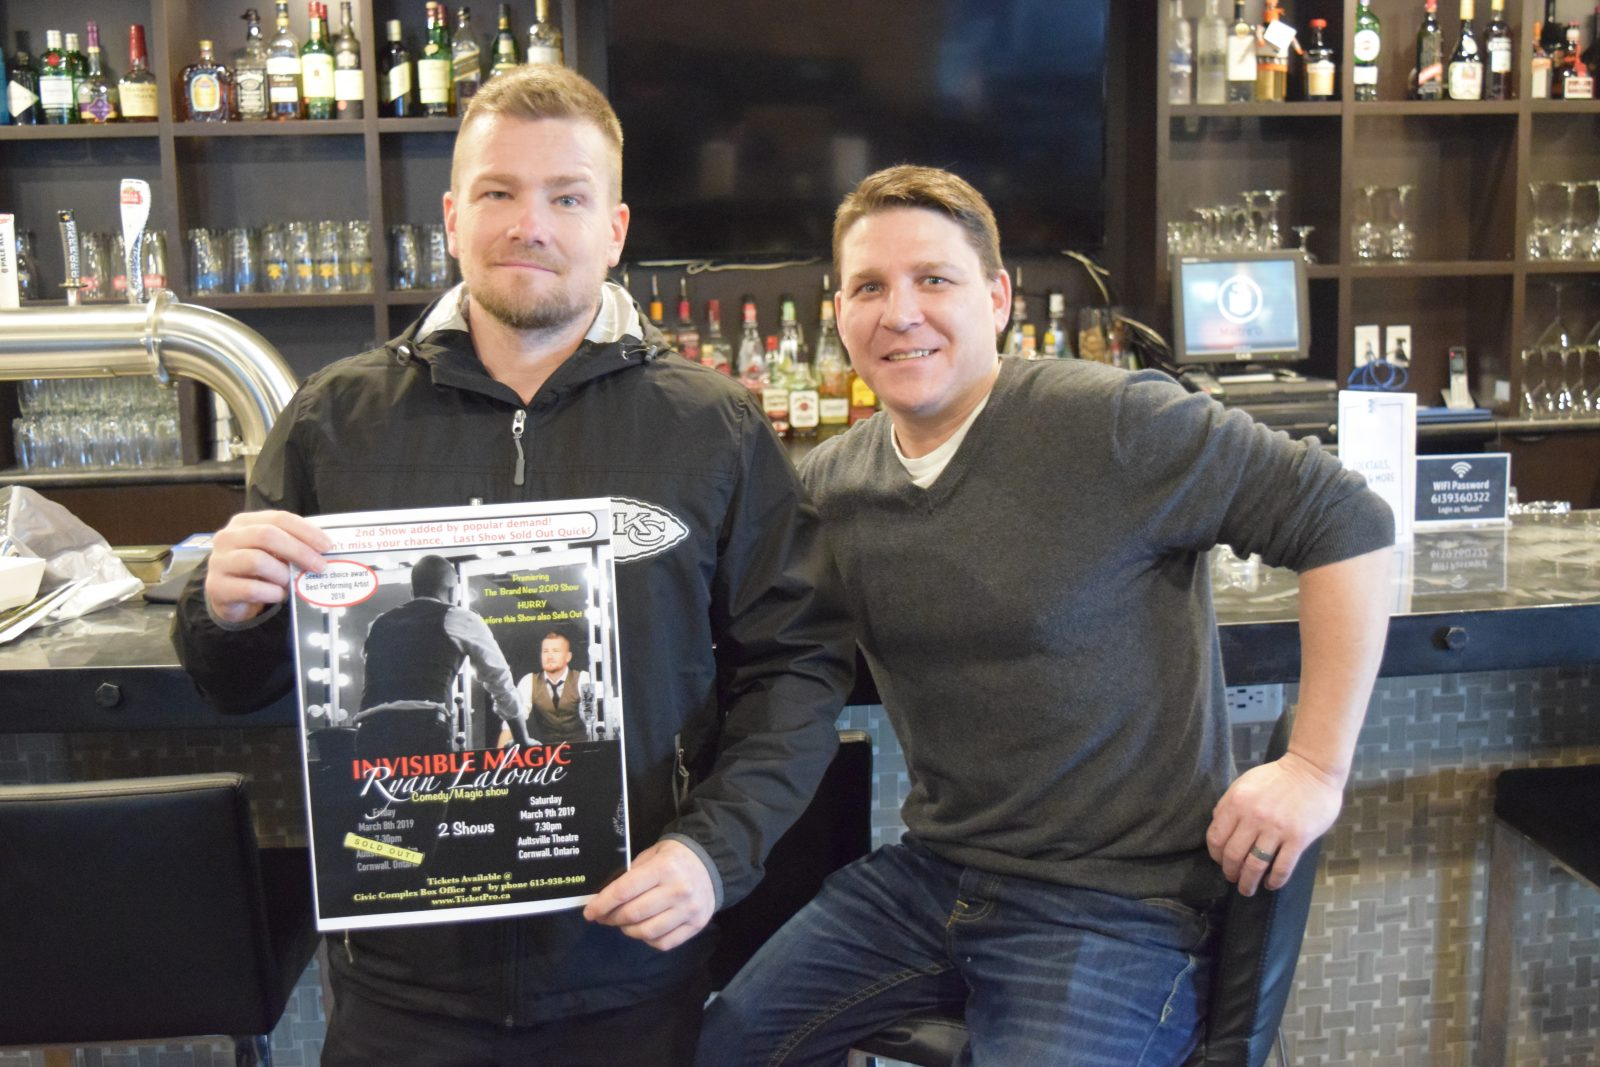 Local businesses support local entertainment